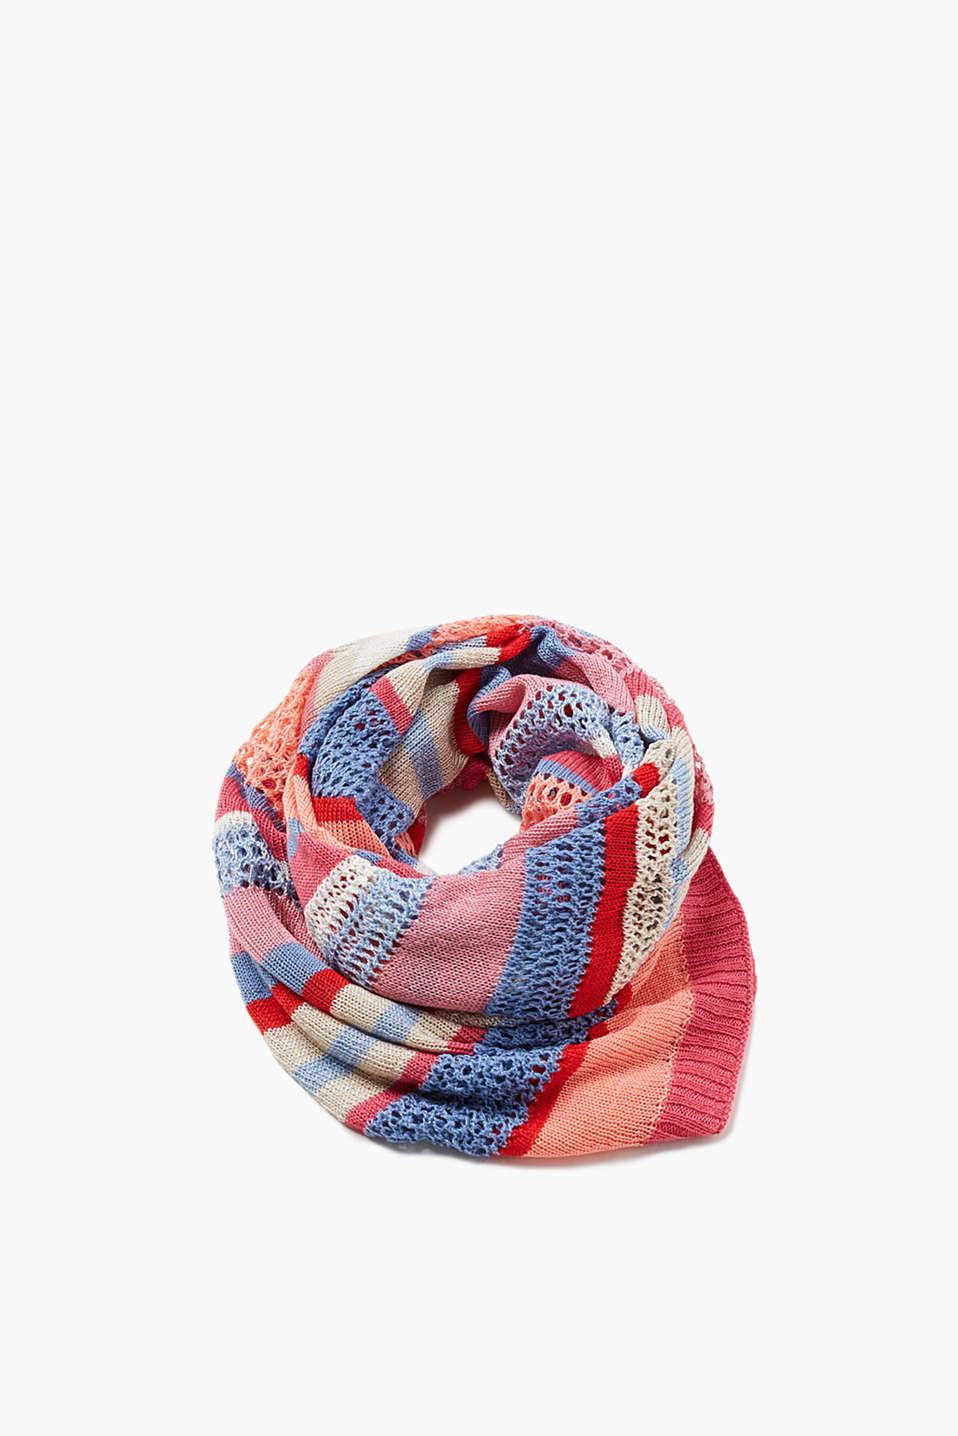 Colourful knit scarf with metallic effect made of soft blended fabric